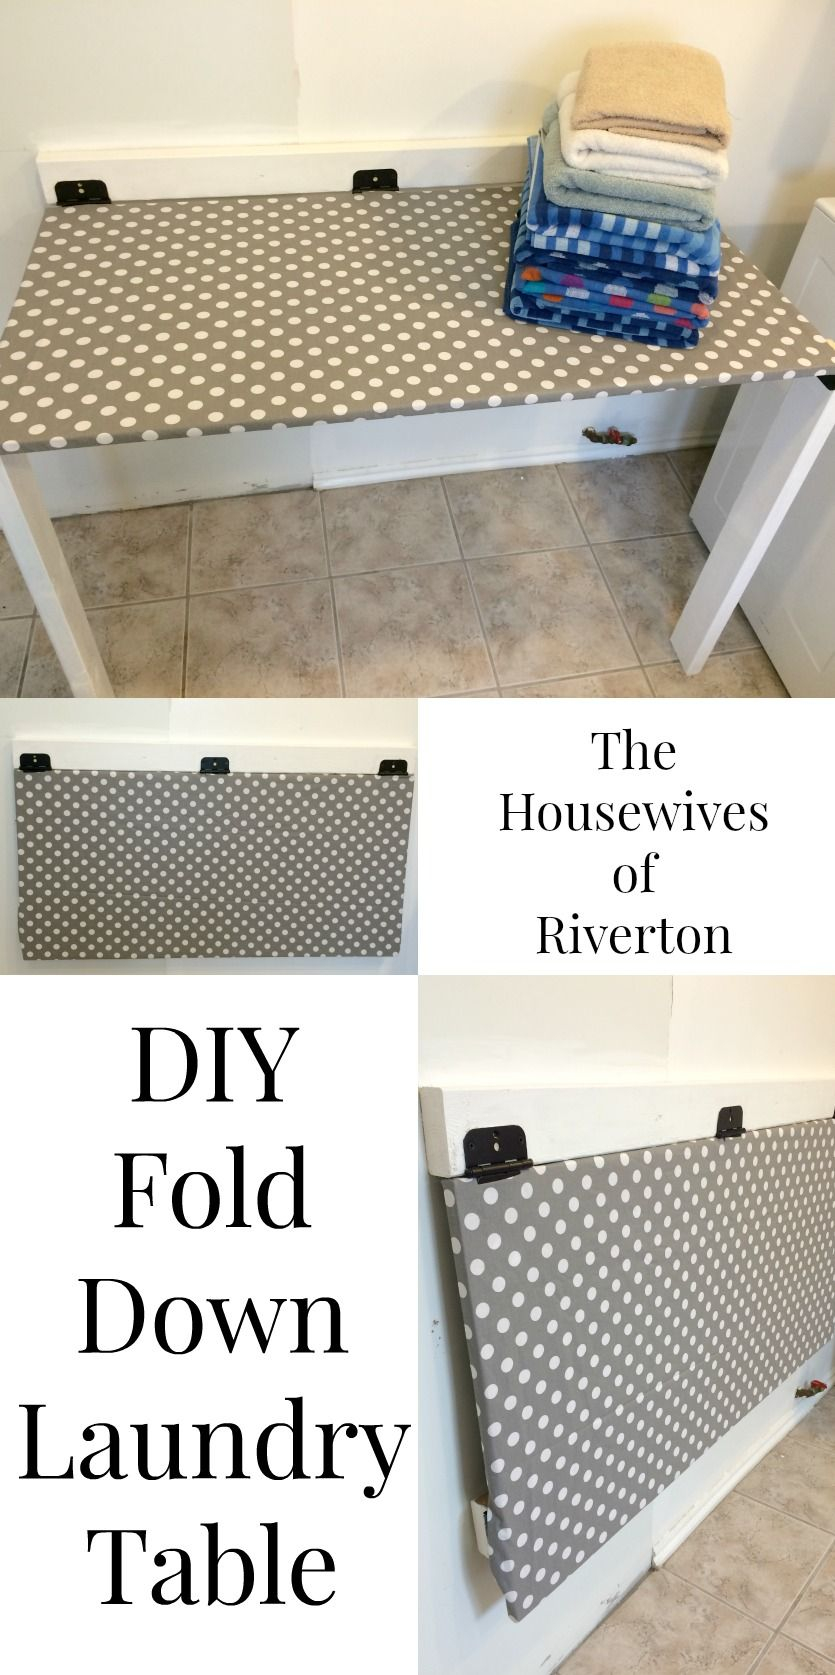 Diy Drop Down Laundry Table Laundry Table Laundry Room with regard to sizing 835 X 1675